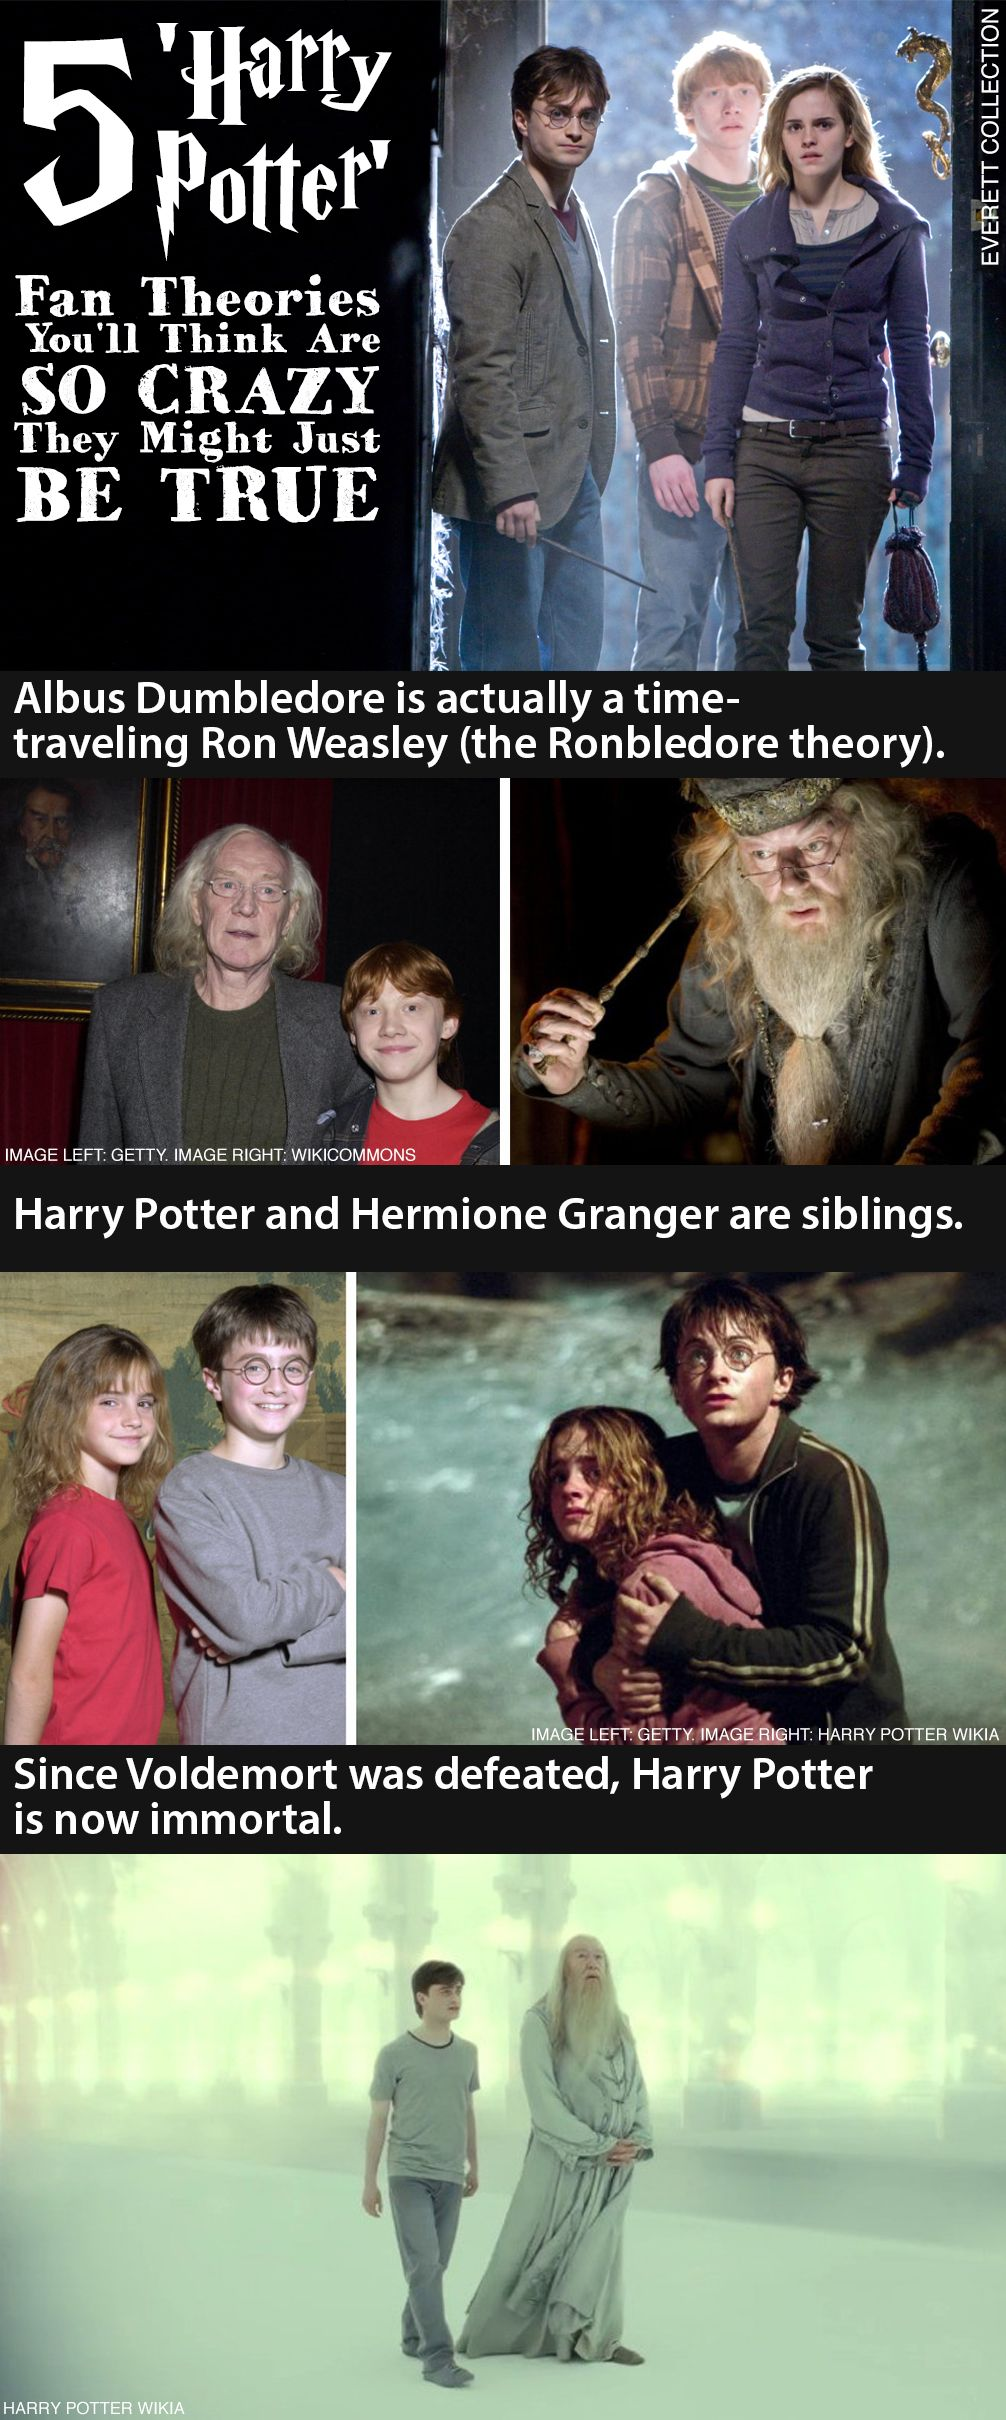 5 Harry Potter Fan Theories So Crazy They Might Just Be True